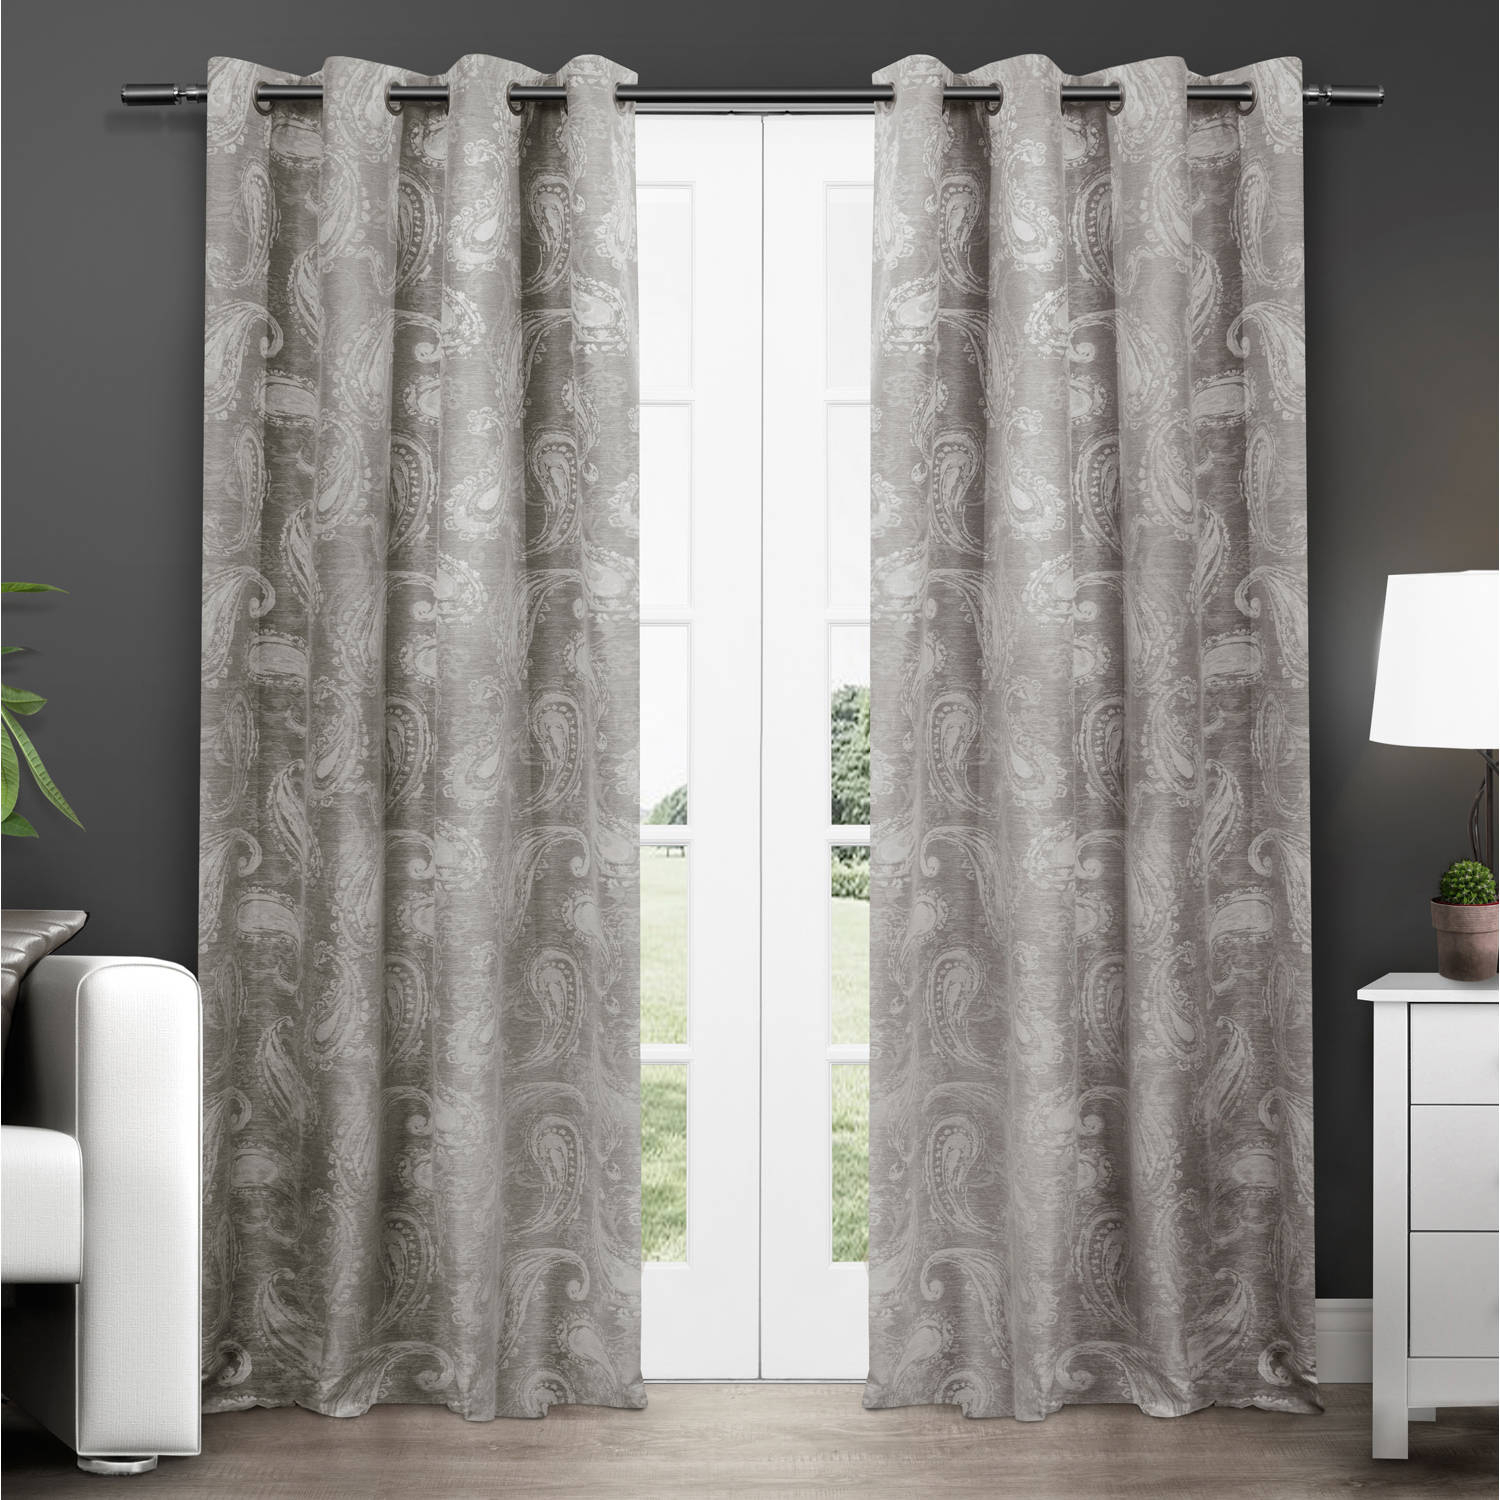 Exclusive Home Bangalore Paisley Thermal Window Curtain Panel Pair With Grommet Top Pertaining To Thermal Insulated Blackout Grommet Top Curtain Panel Pairs (View 9 of 30)